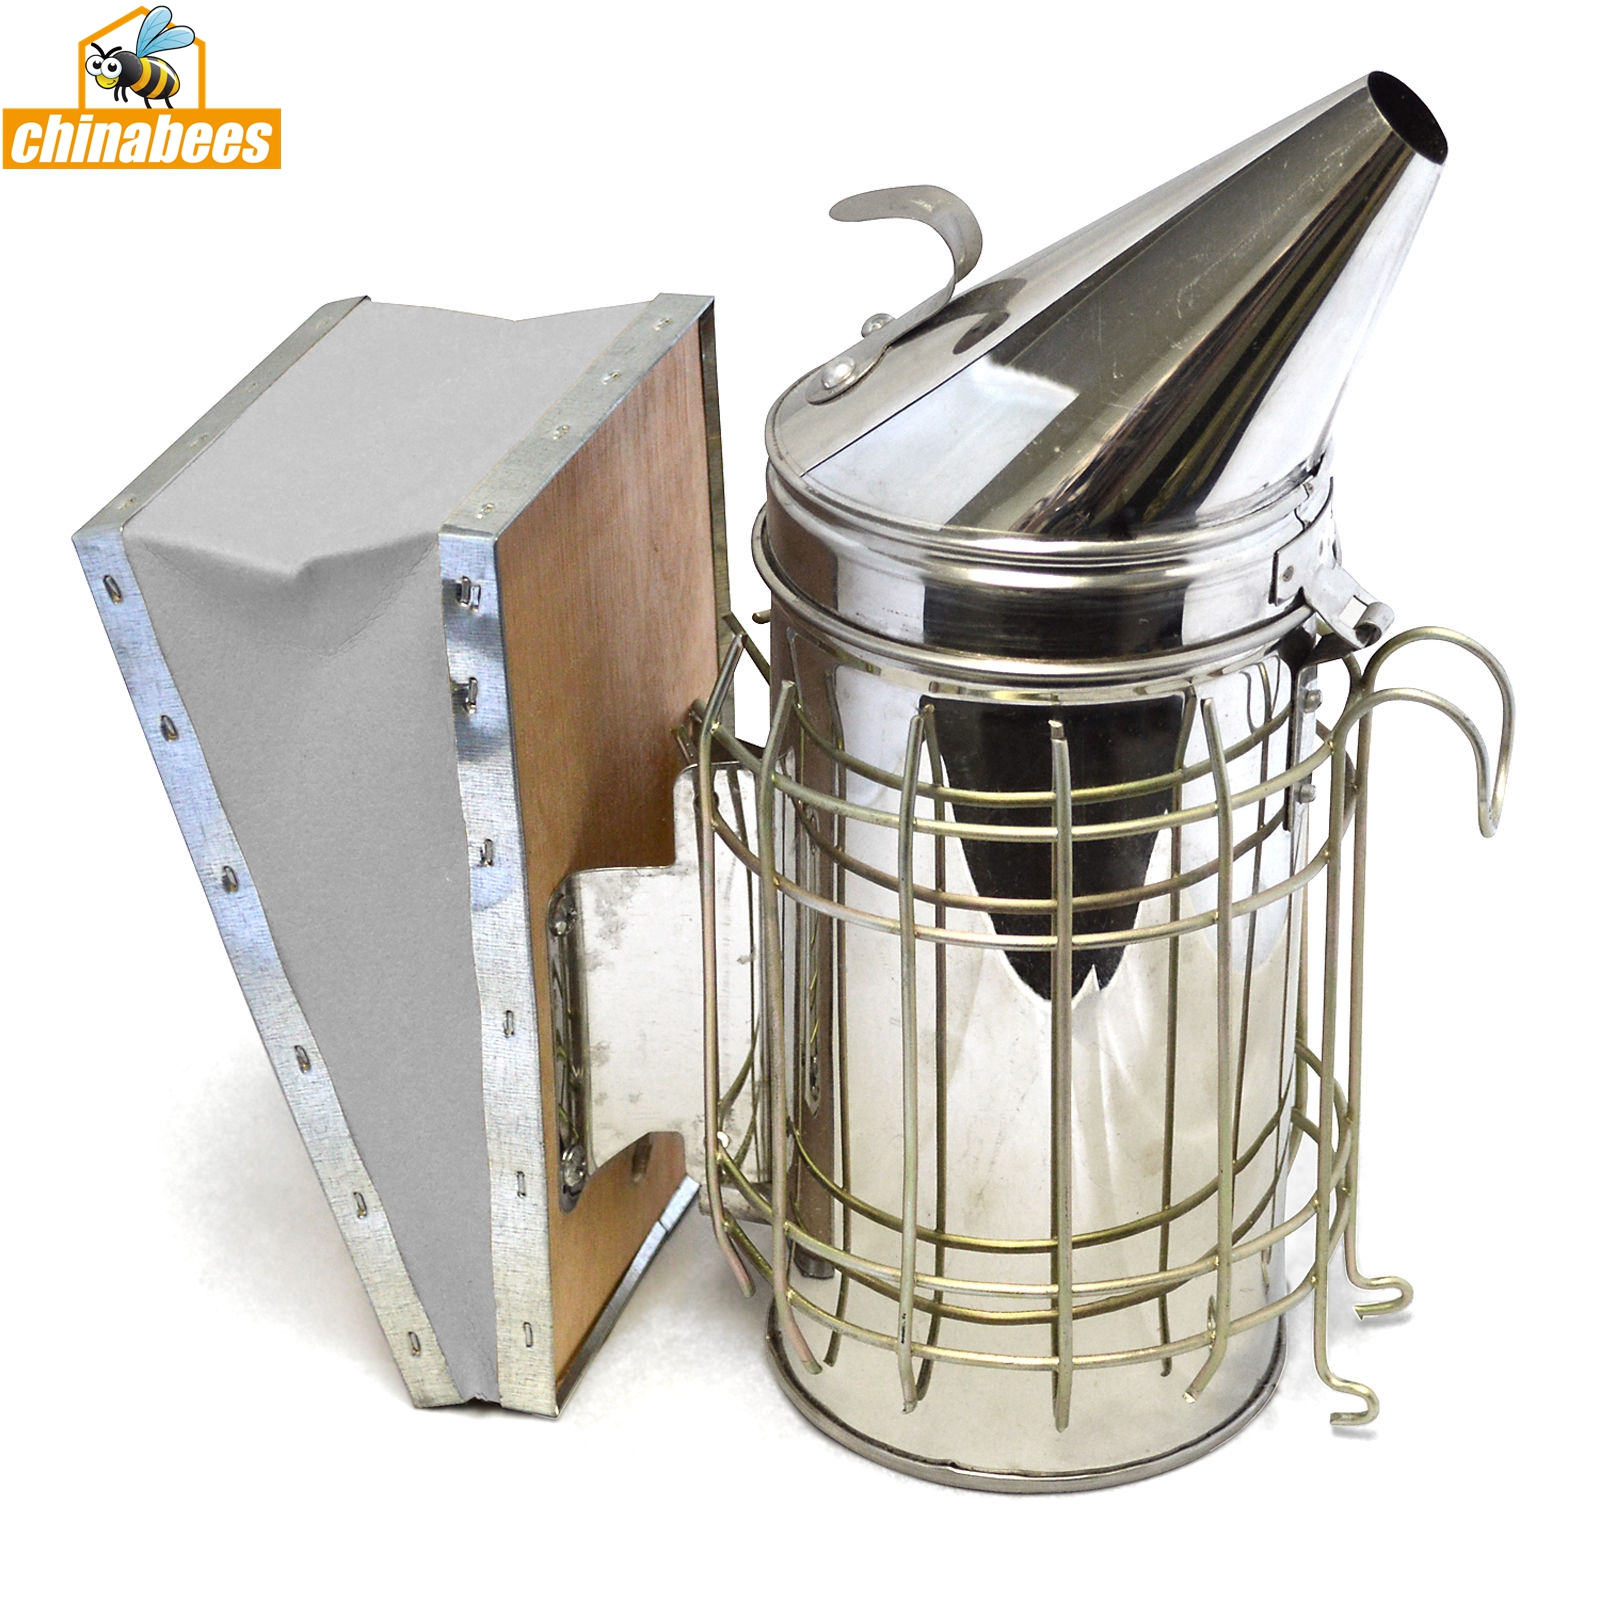 Honey Keeper Bee Hive Smoker Stainless Steel Heat Shield